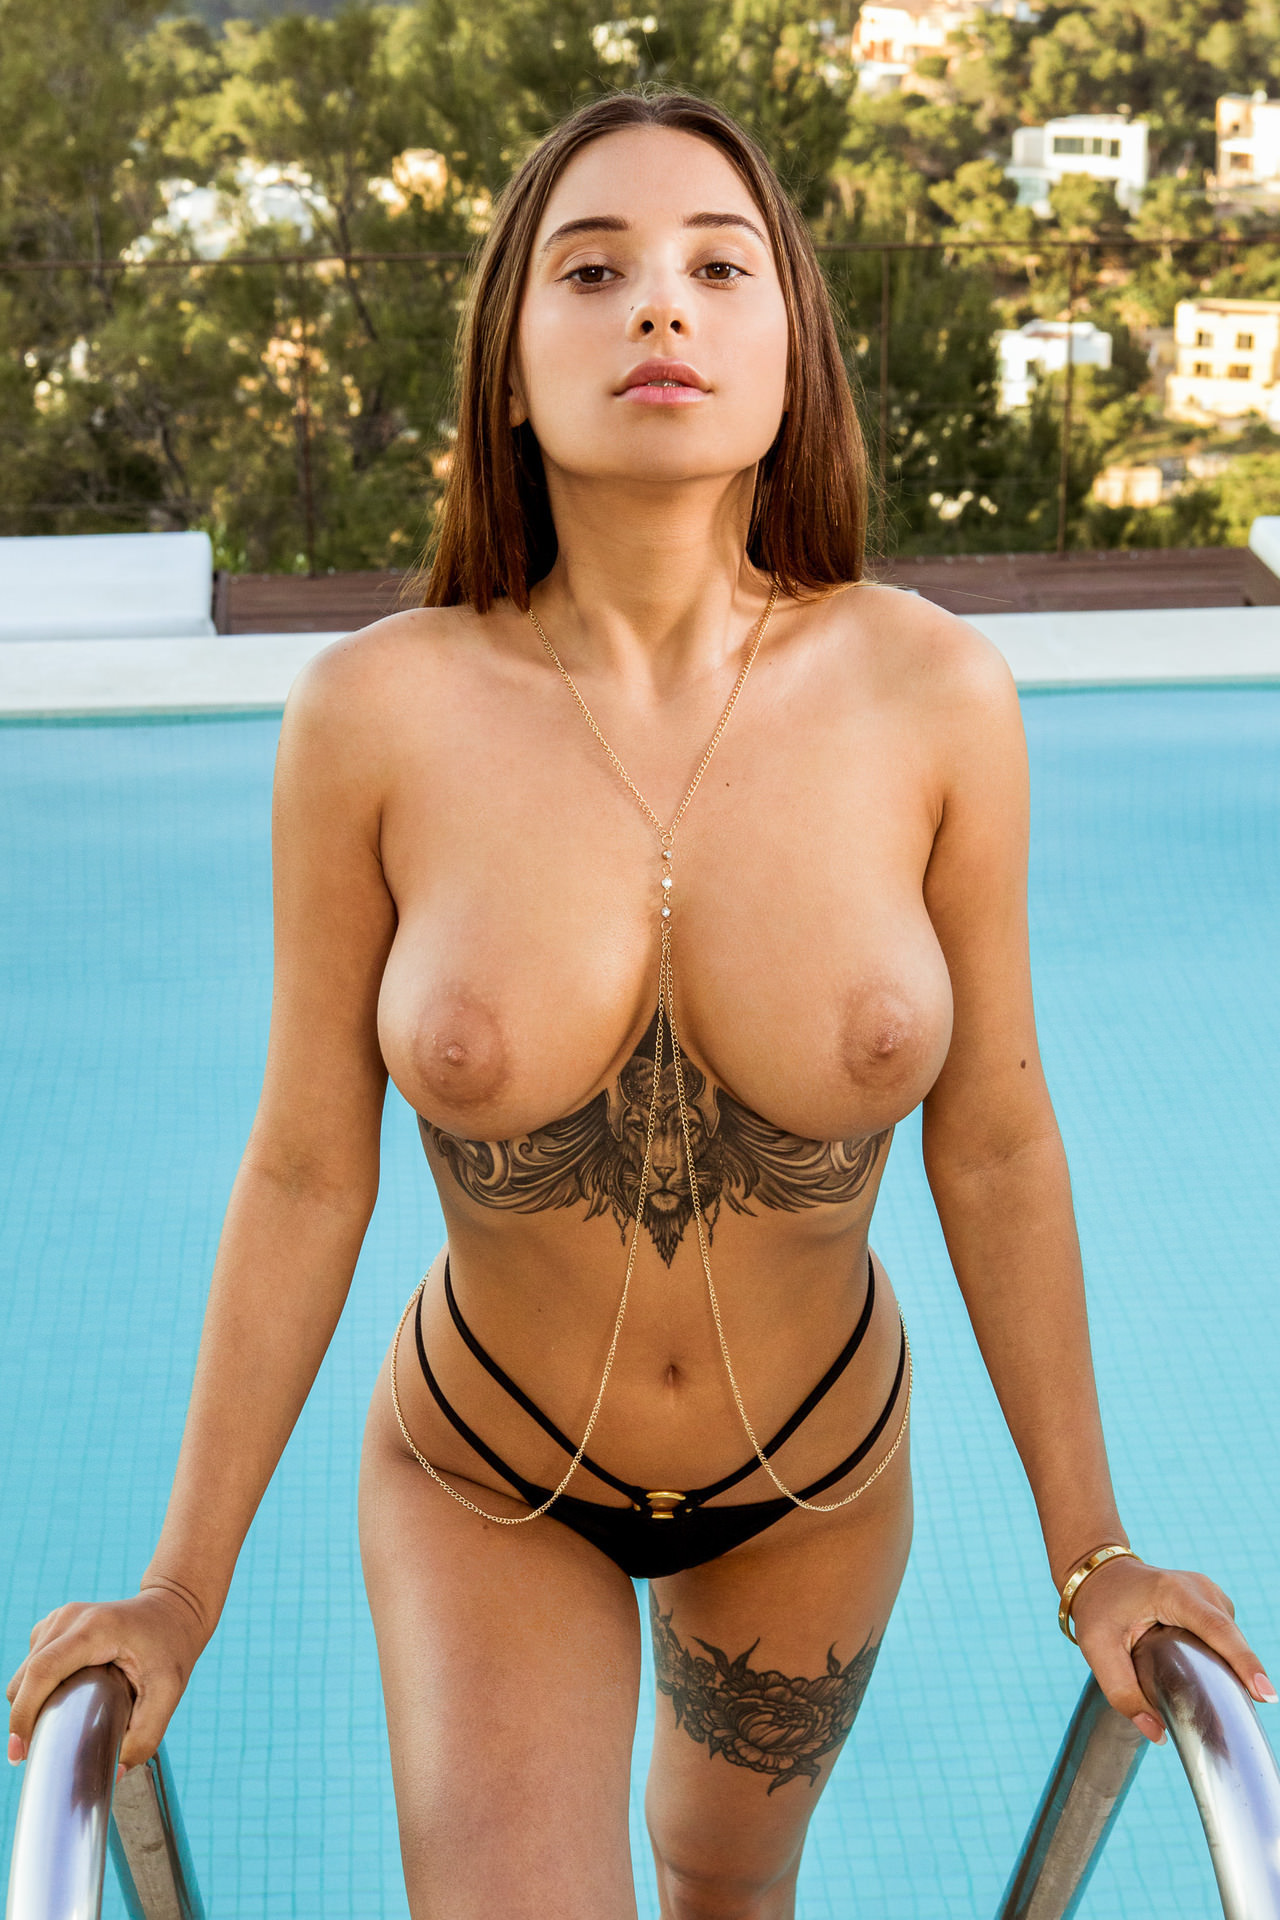 Topless Kristina Shcherbinina nudes (62 foto and video), Topless, Leaked, Boobs, legs 2017